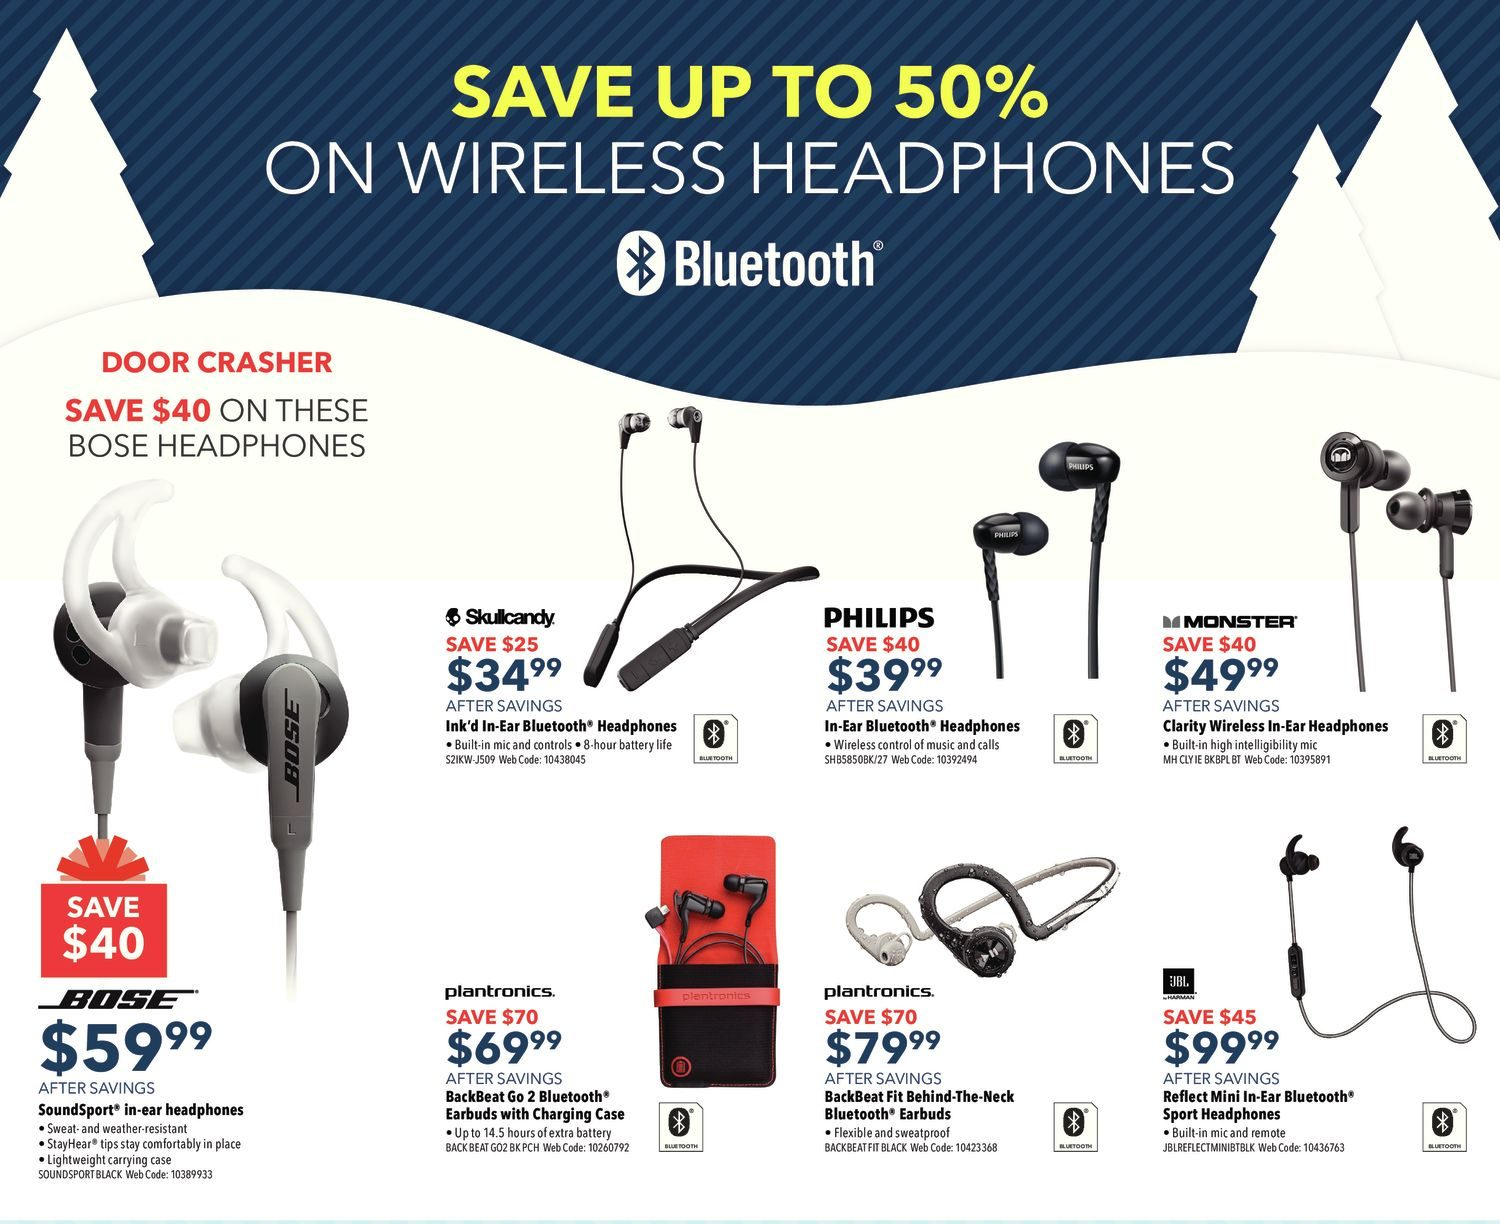 Best buy weekly flyer weekly black friday sale nov 25 dec 1 best buy weekly flyer weekly black friday sale nov 25 dec 1 redflagdeals fandeluxe Image collections